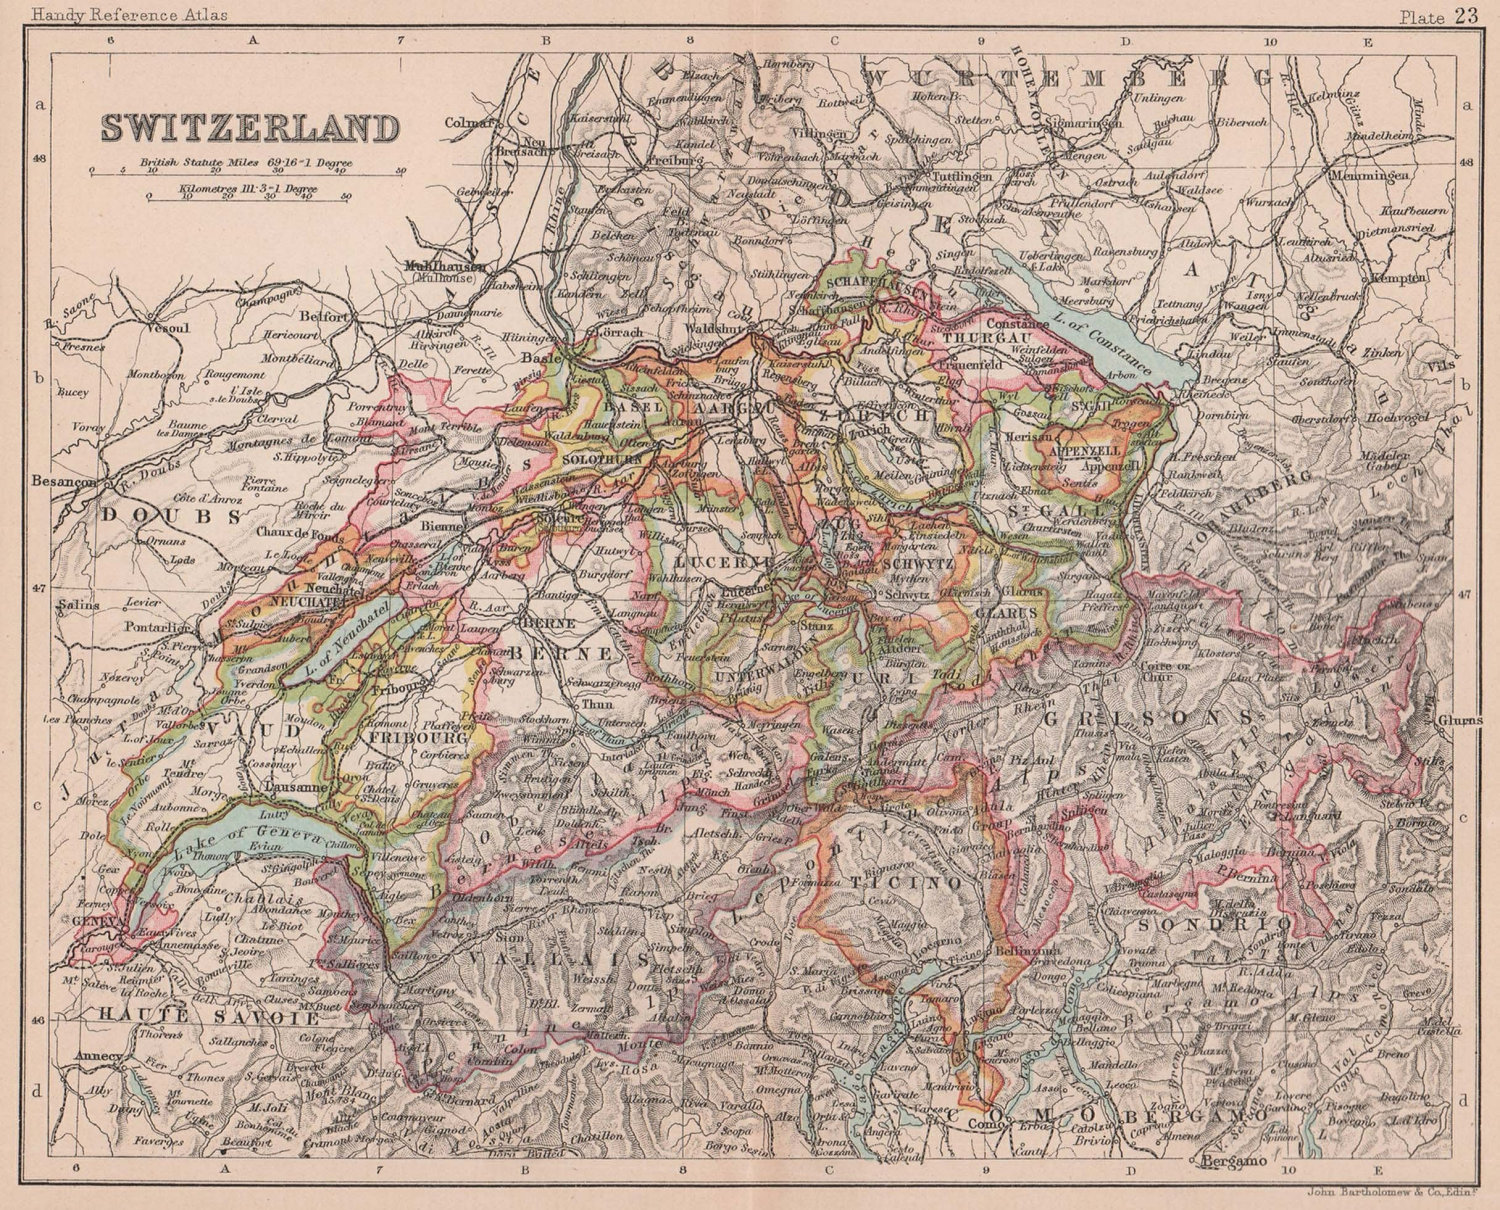 Switzerland in cantons. BARTHOLOMEW 1893 old antique vintage map plan chart